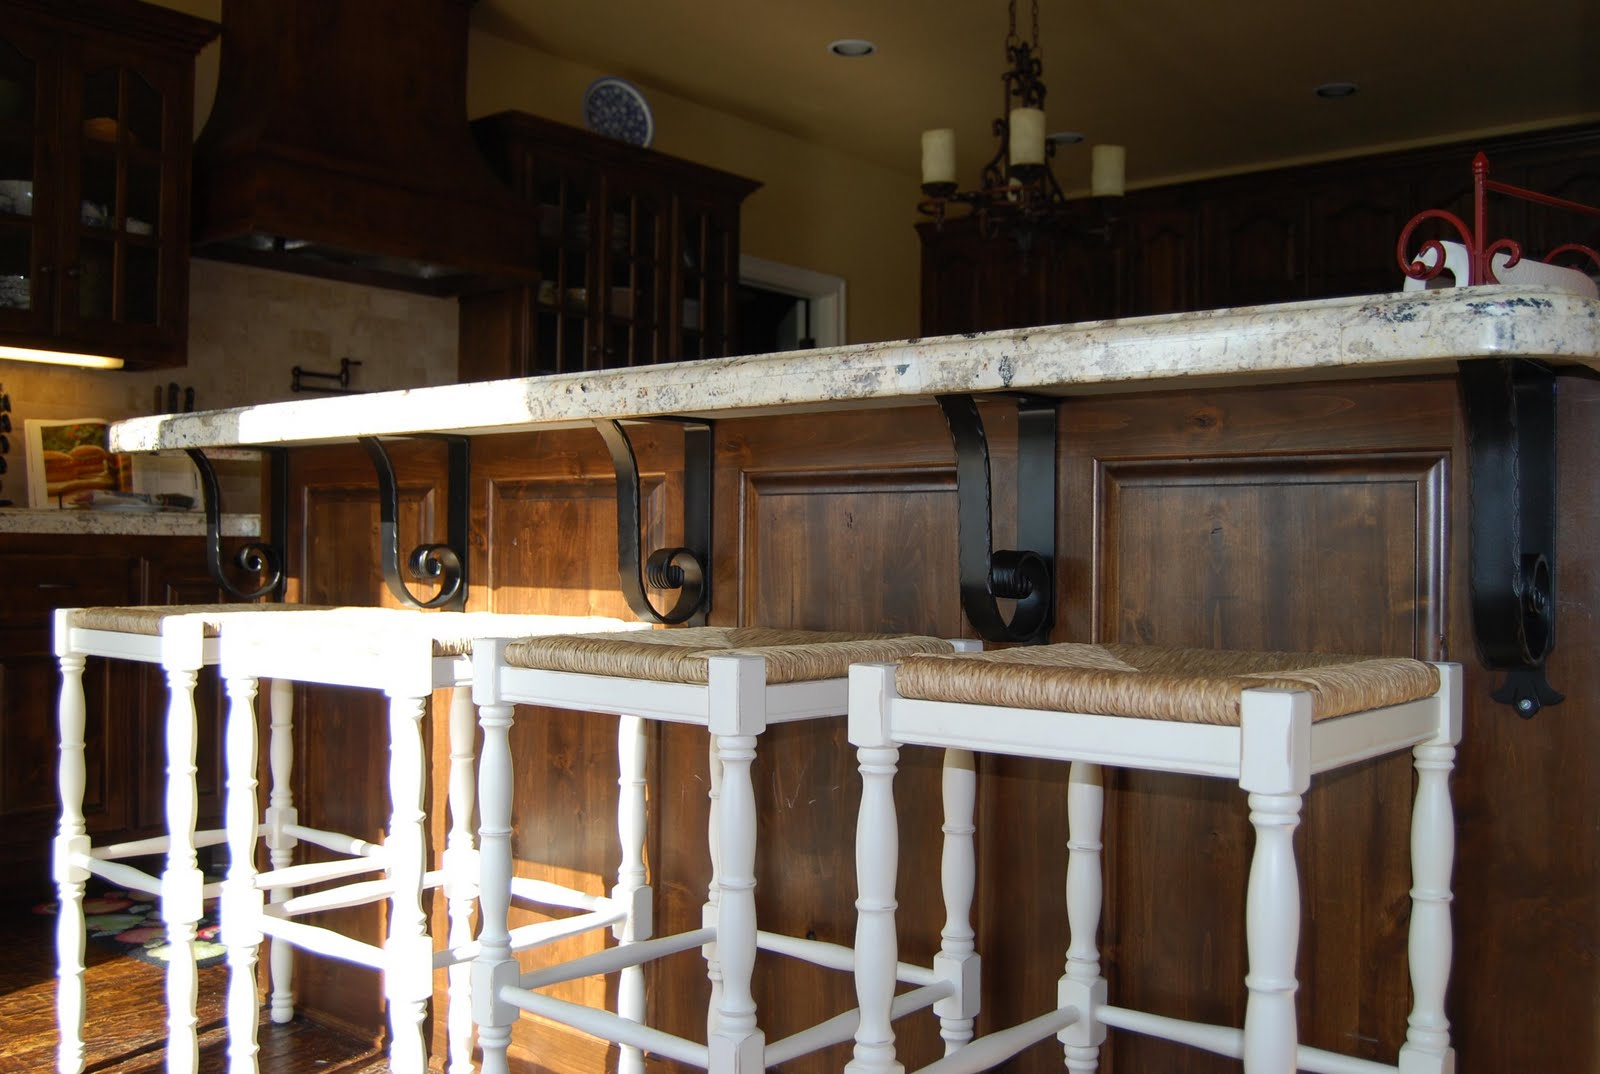 For The Best Selection Of Decorative Iron Corbels And Brackets On The  Market, Visit Www.wroughtironcorbels.com